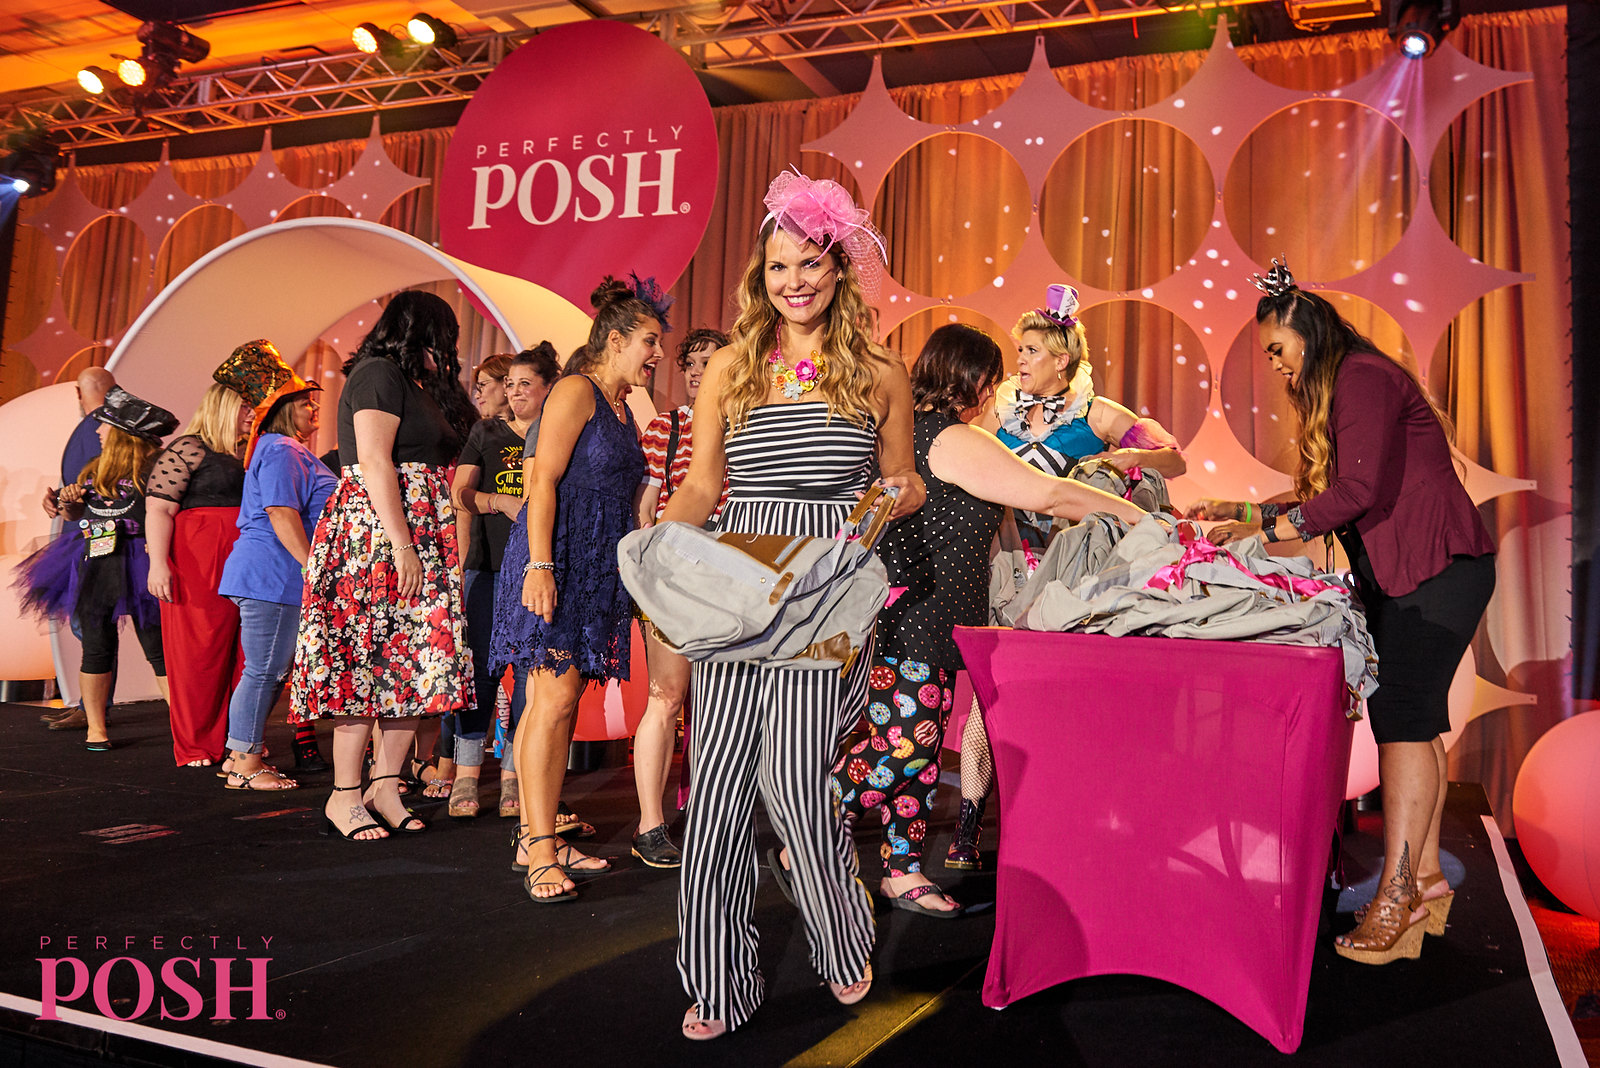 Awards and recognition for Perfectly Posh Influencers at the Mad Hatter Tea Party at UnCon 2019